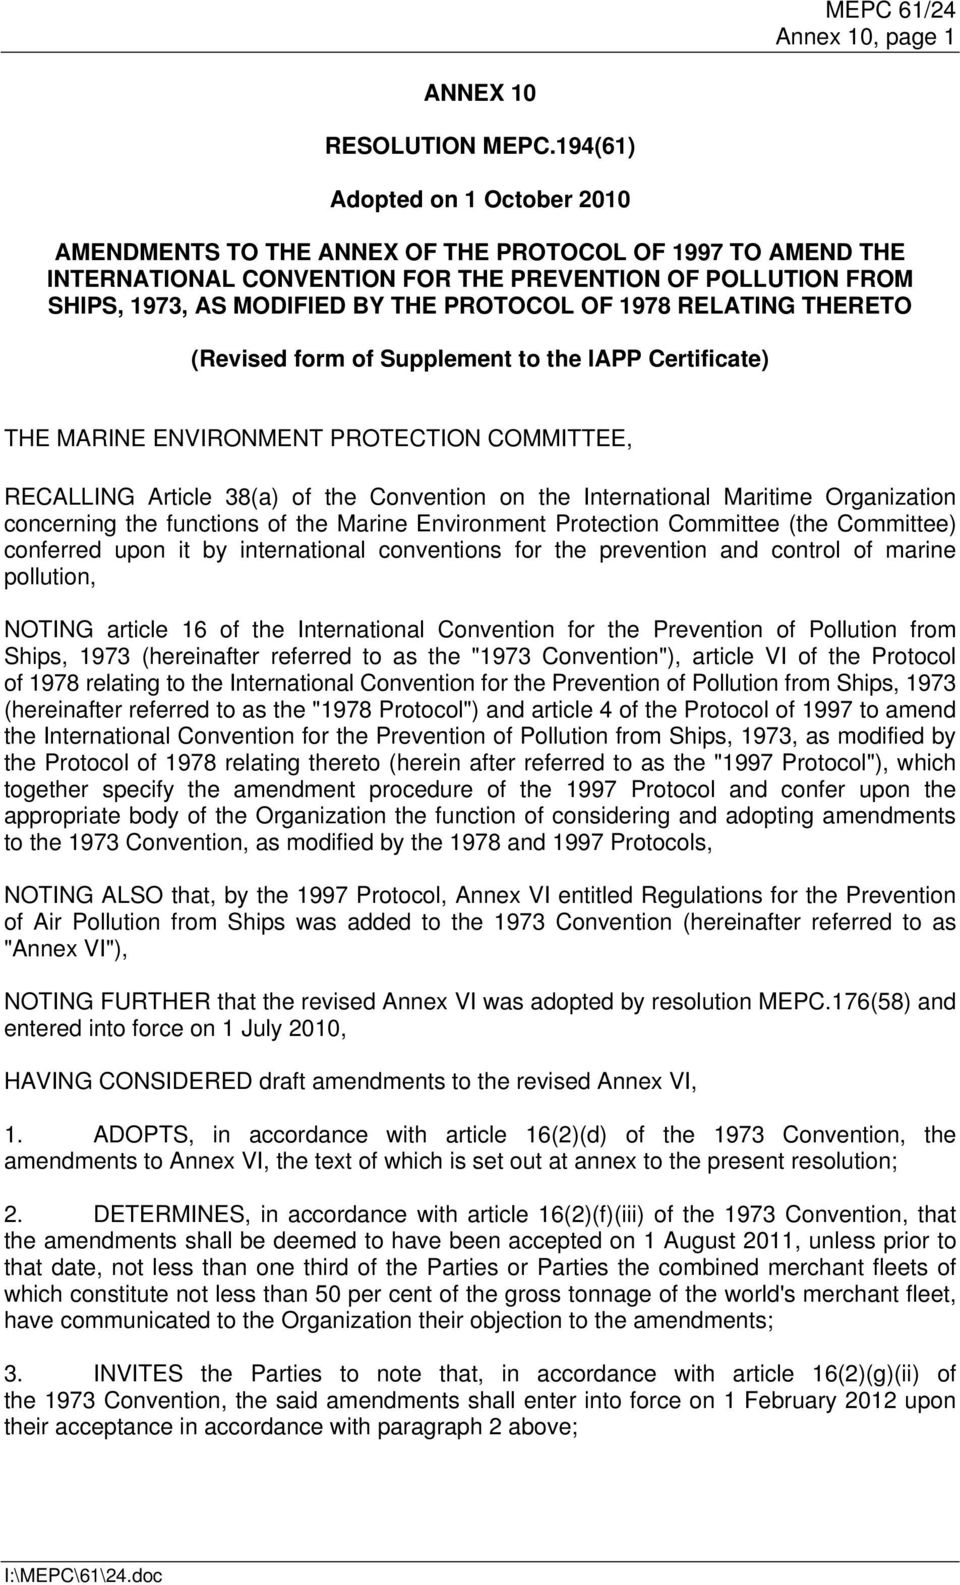 OF 1978 RELATING THERETO (Revised form of Supplement to the IAPP Certificate) THE MARINE ENVIRONMENT PROTECTION COMMITTEE, RECALLING Article 38(a) of the Convention on the International Maritime